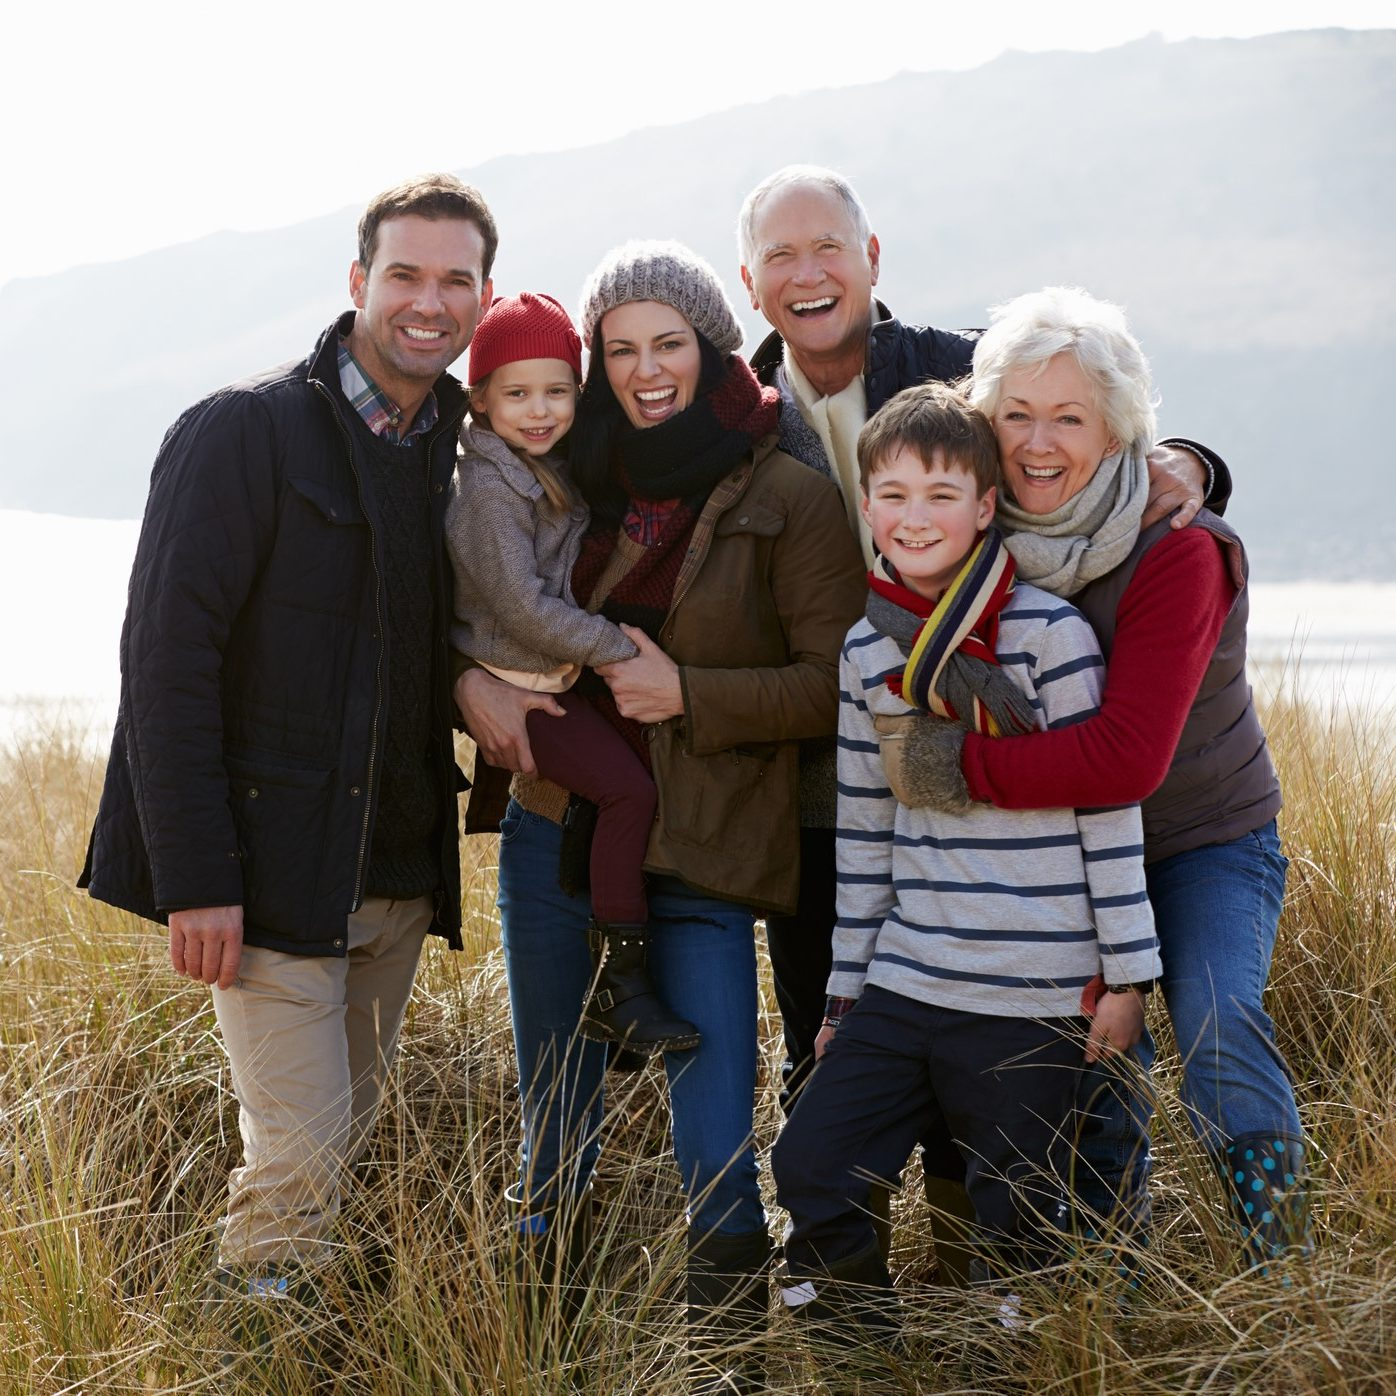 Multi Generation Family In Sand Dunes On Winter Beach Smiling To Camera